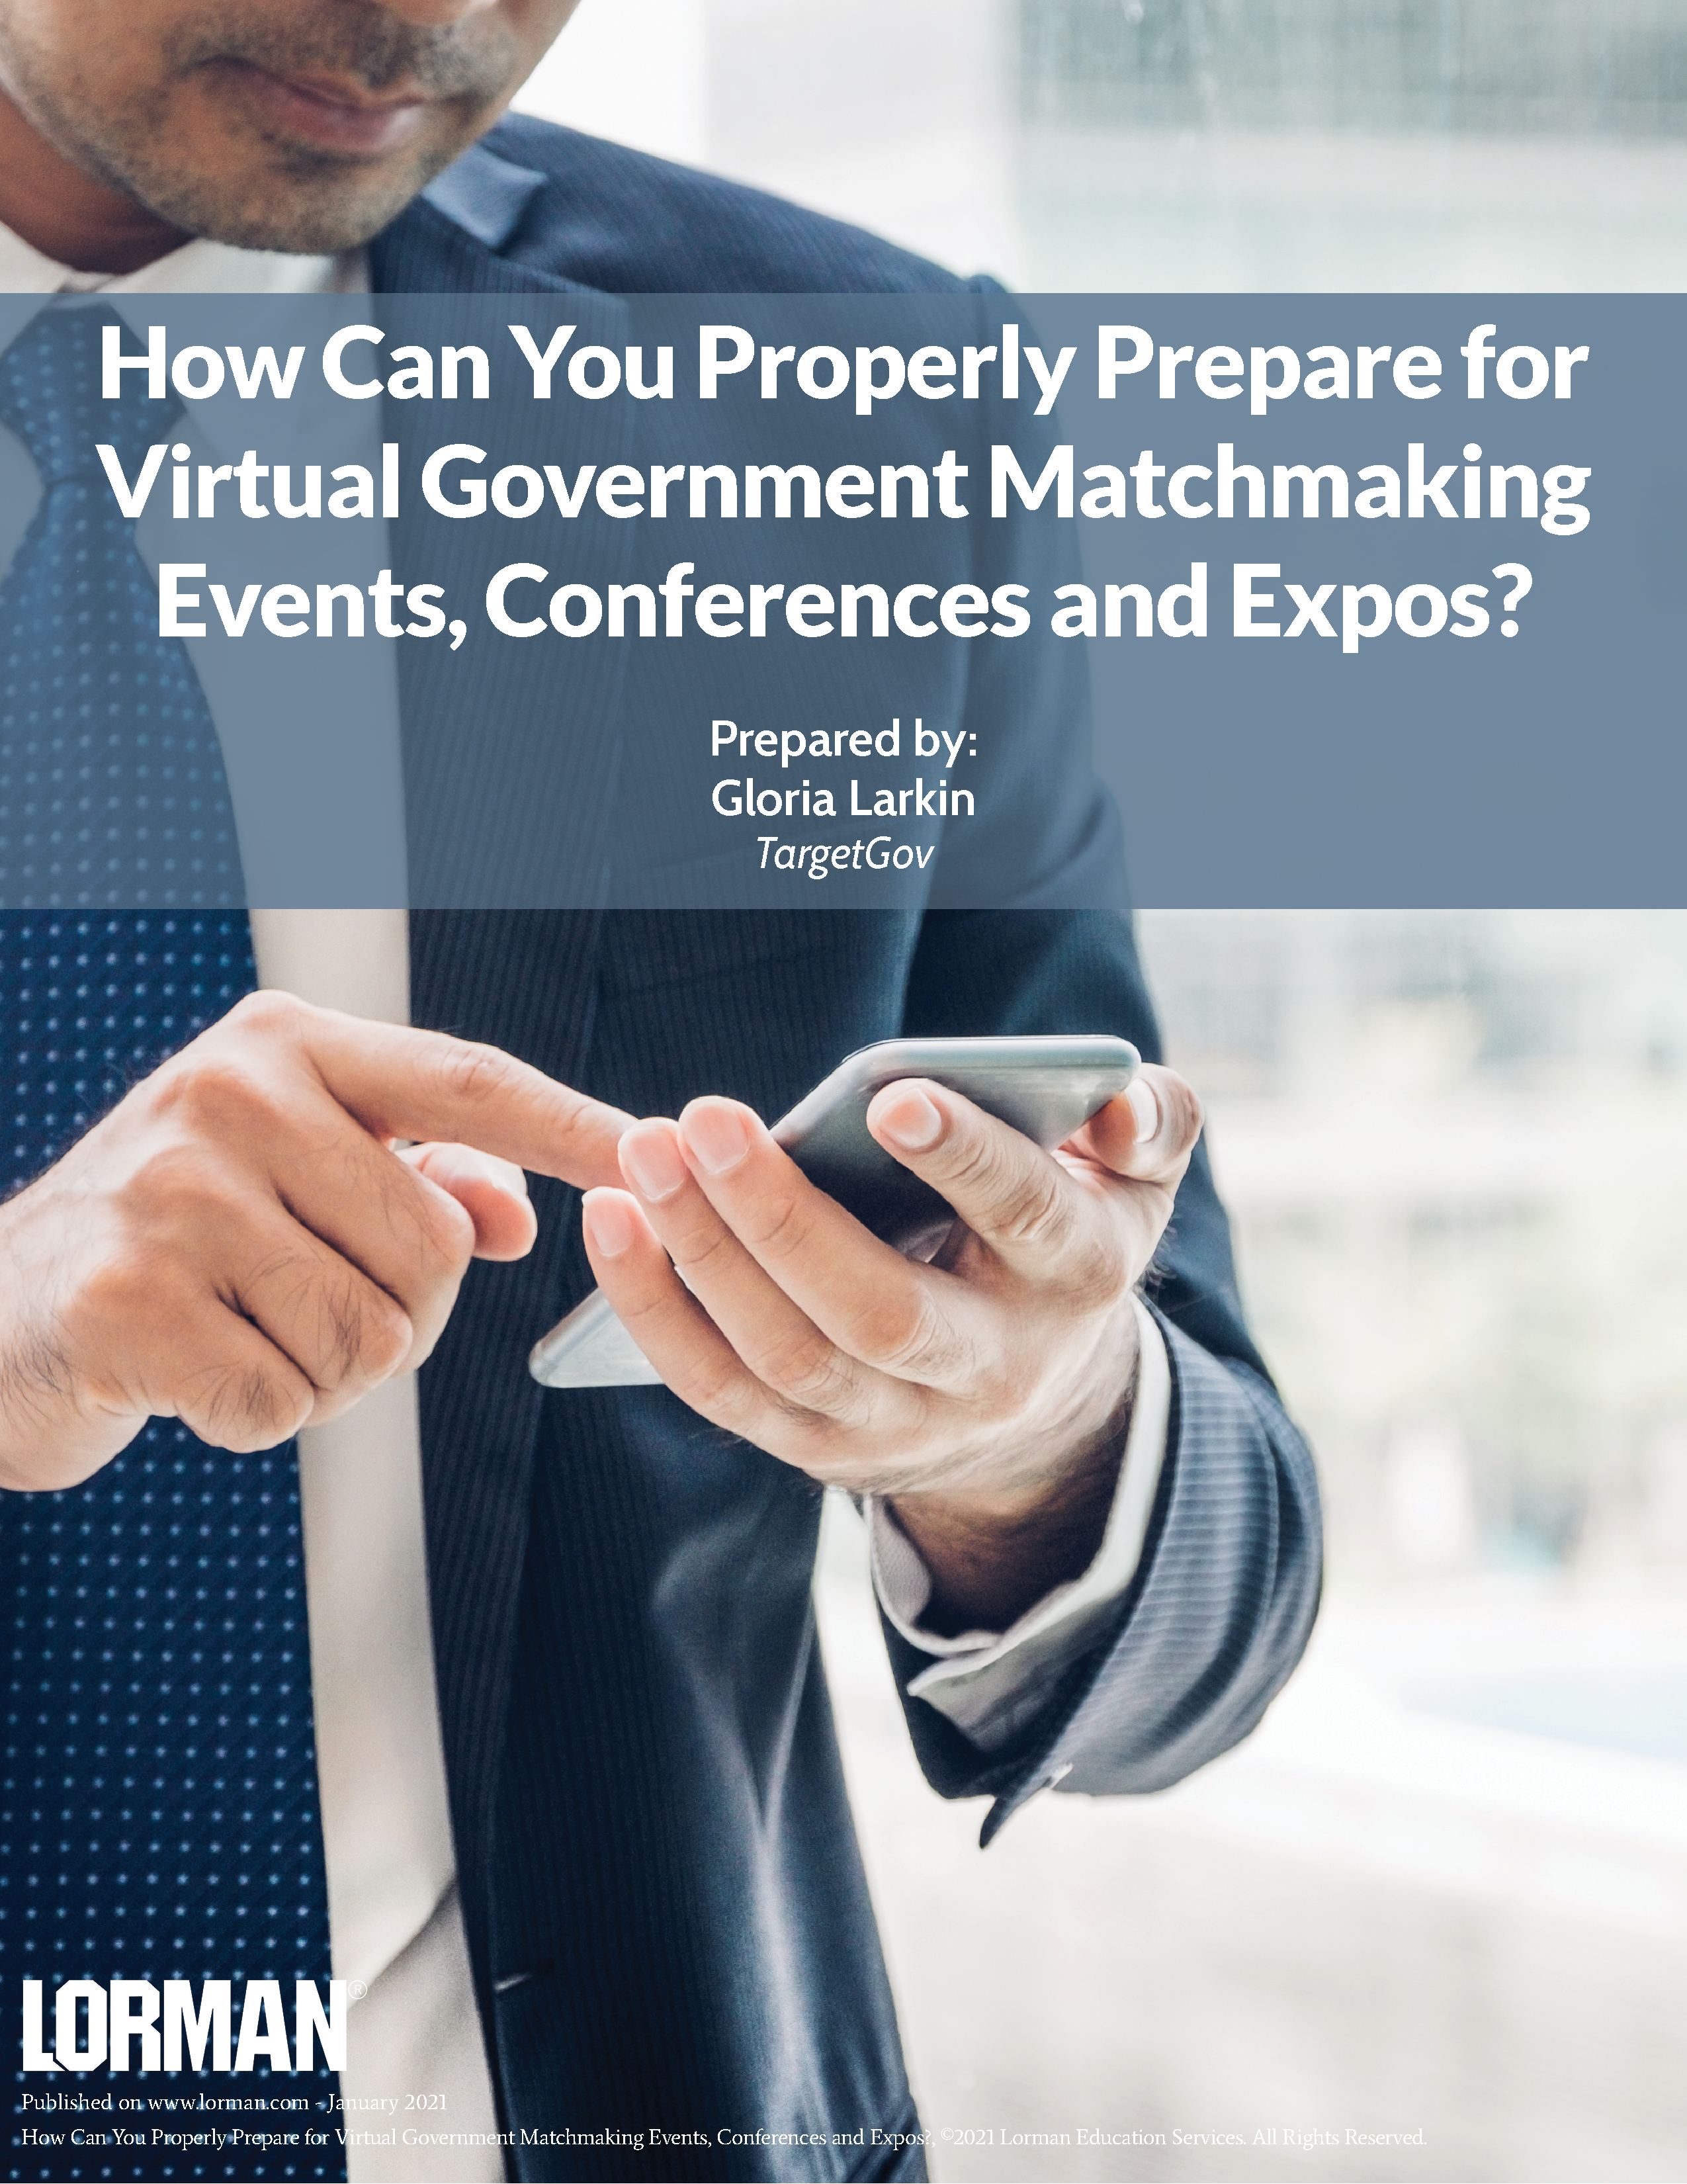 How Can You Properly Prepare for Virtual Government Matchmaking Events, Conferences and Expos?